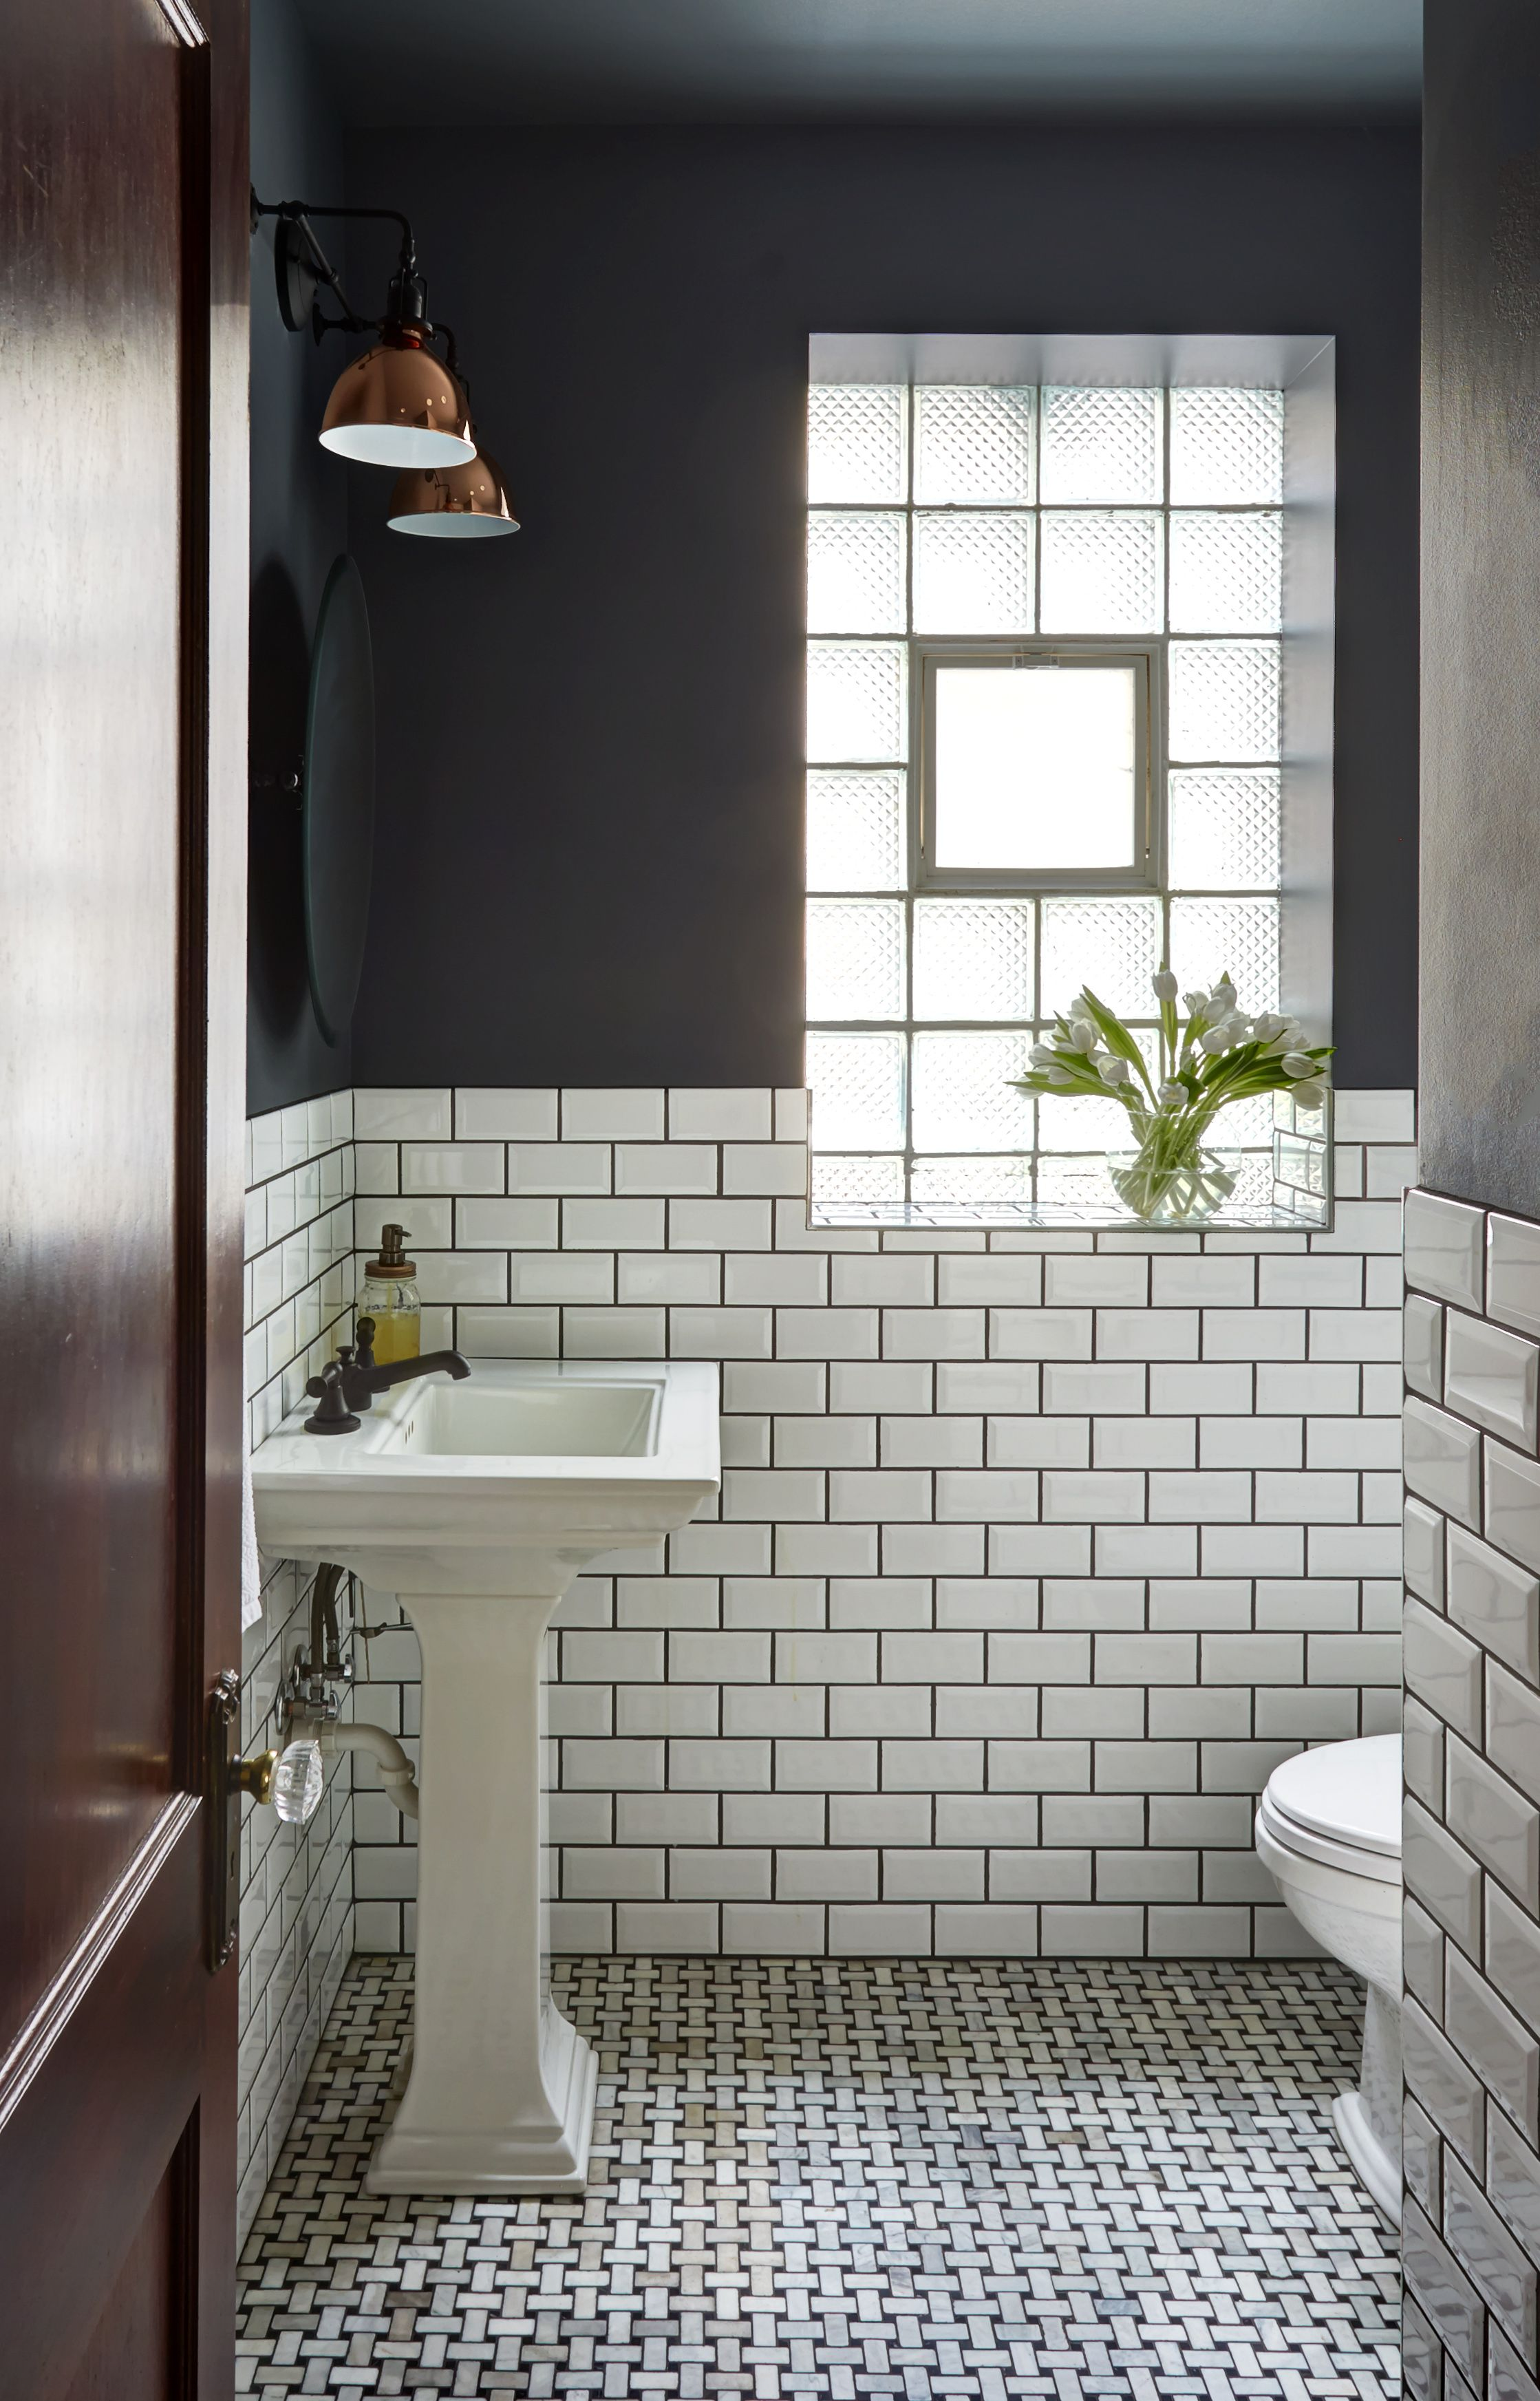 Bathroom Subway Tile Dark Grout blog — unpatterned interiors: subway tile, dark grout, classic